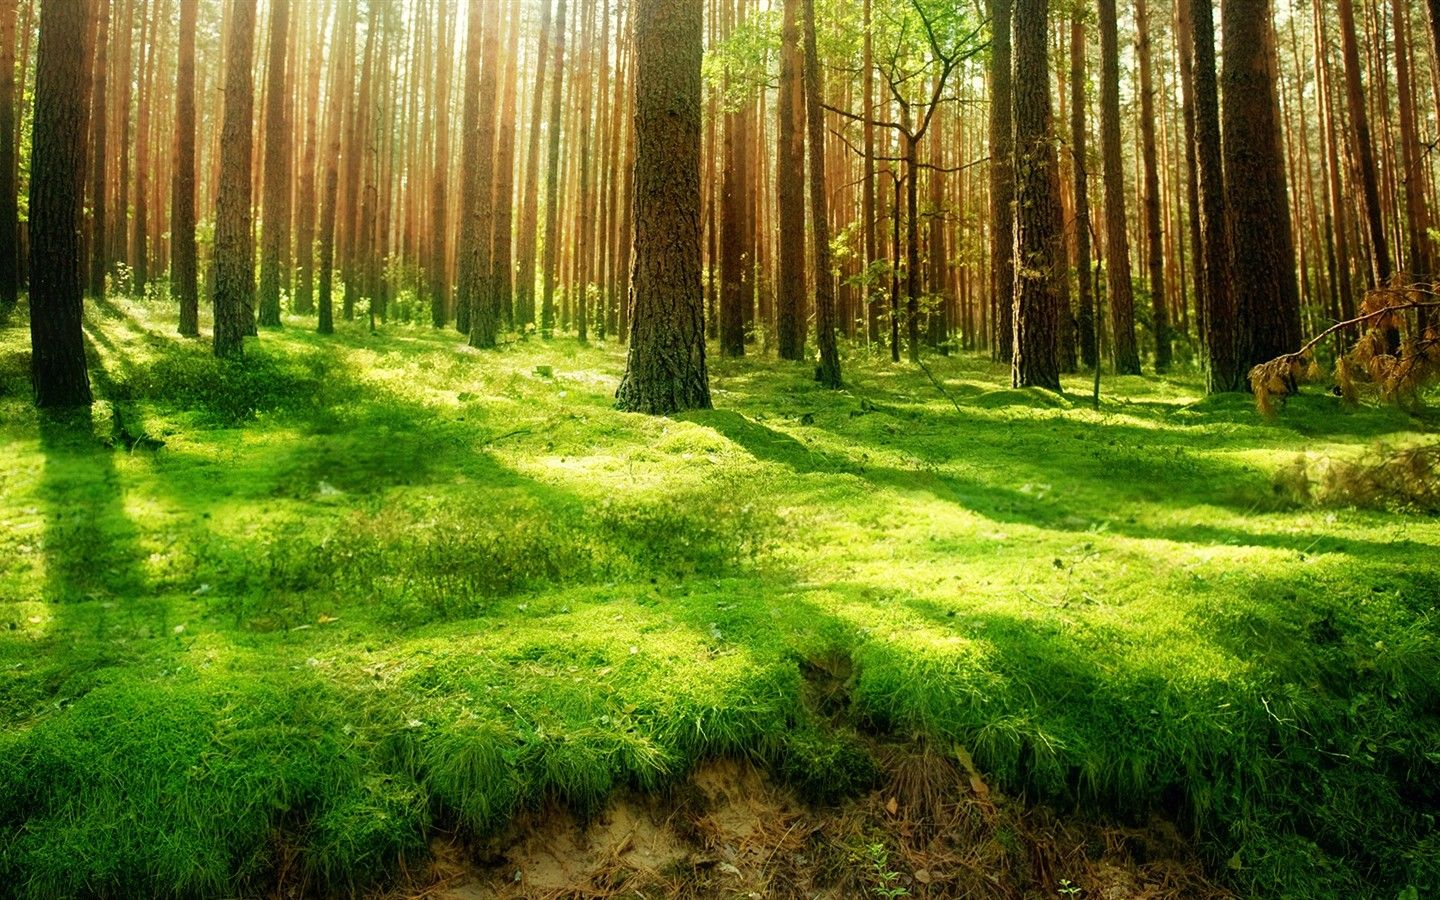 Forest Forest Scenery Scenery Wallpaper Beautiful Forest